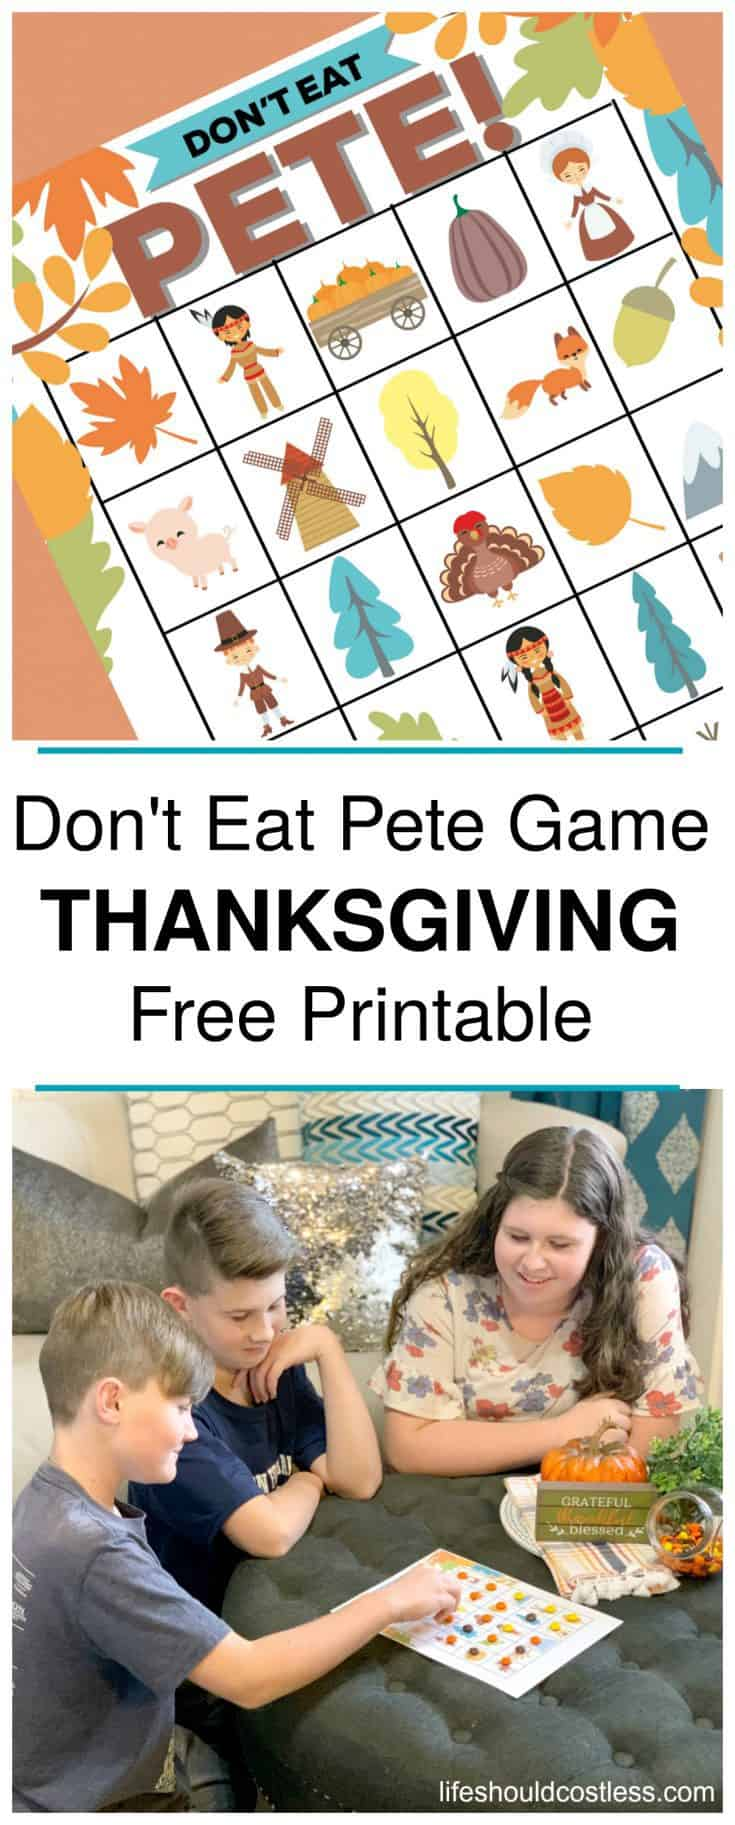 Instructions: How To Play Don't Eat Pete Game with free printable Thanksgiving version. lifeshouldcostless.com